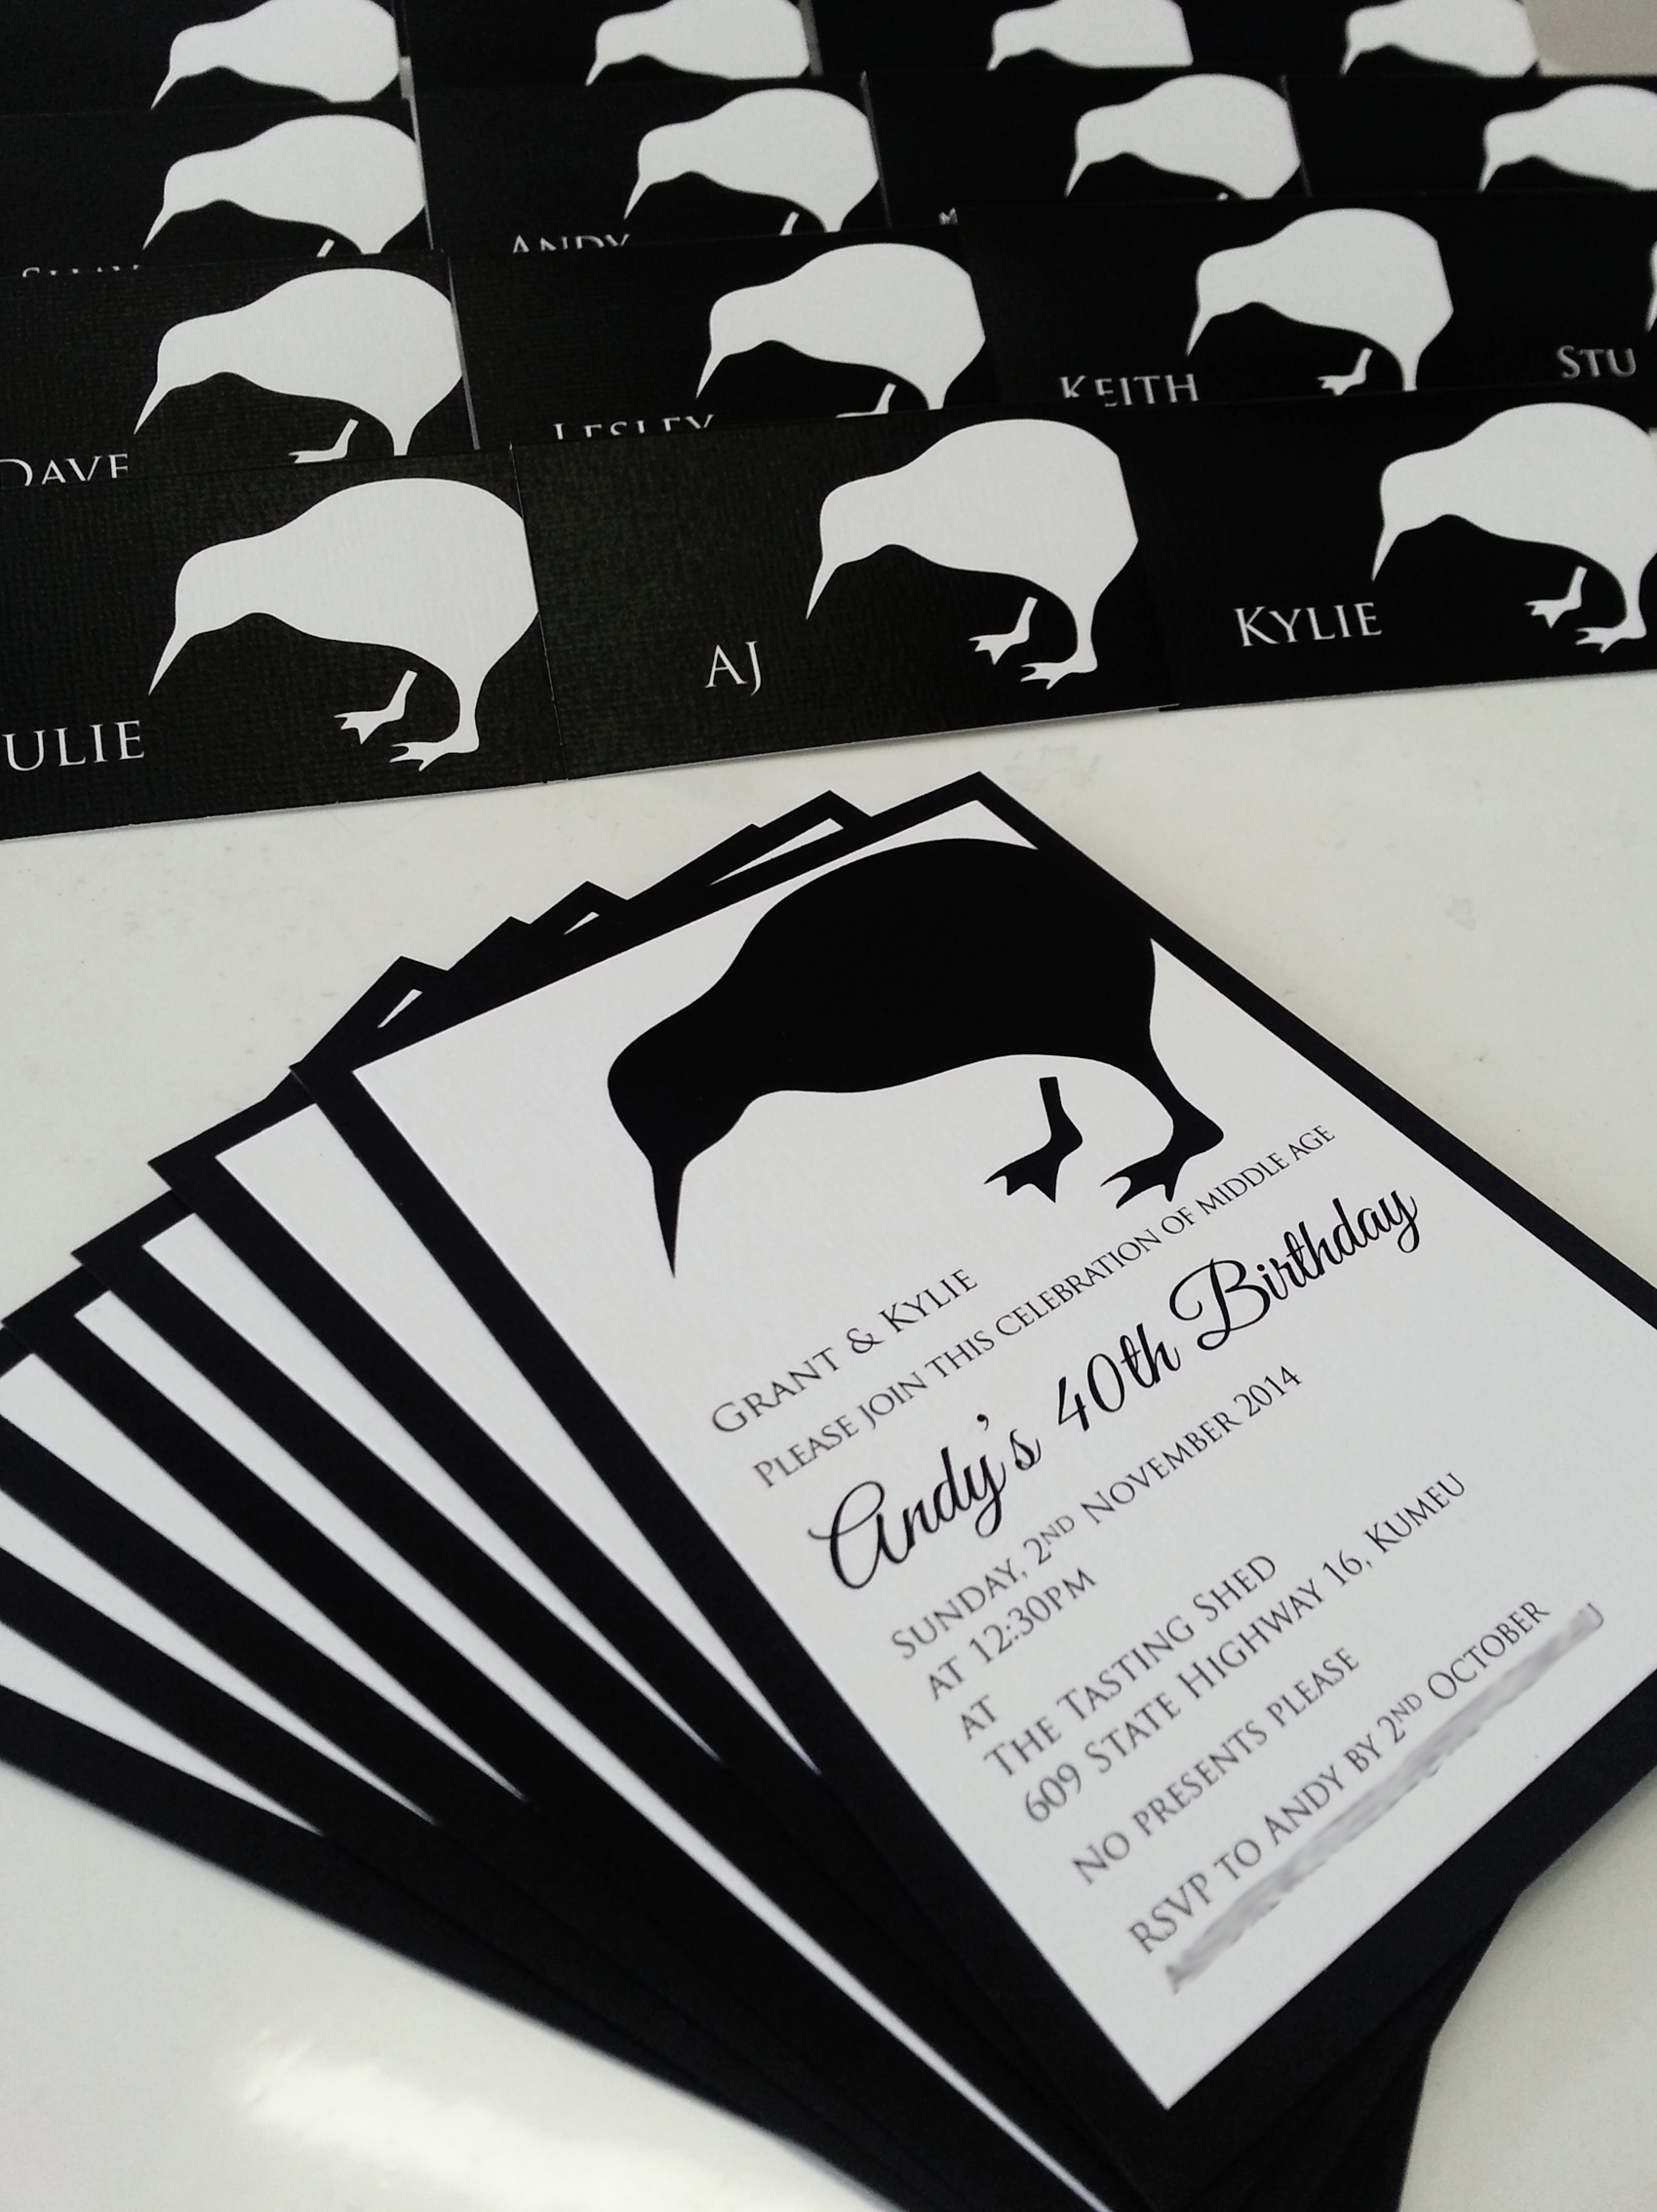 Kiwi 40th birthday invitations sydney.jpg